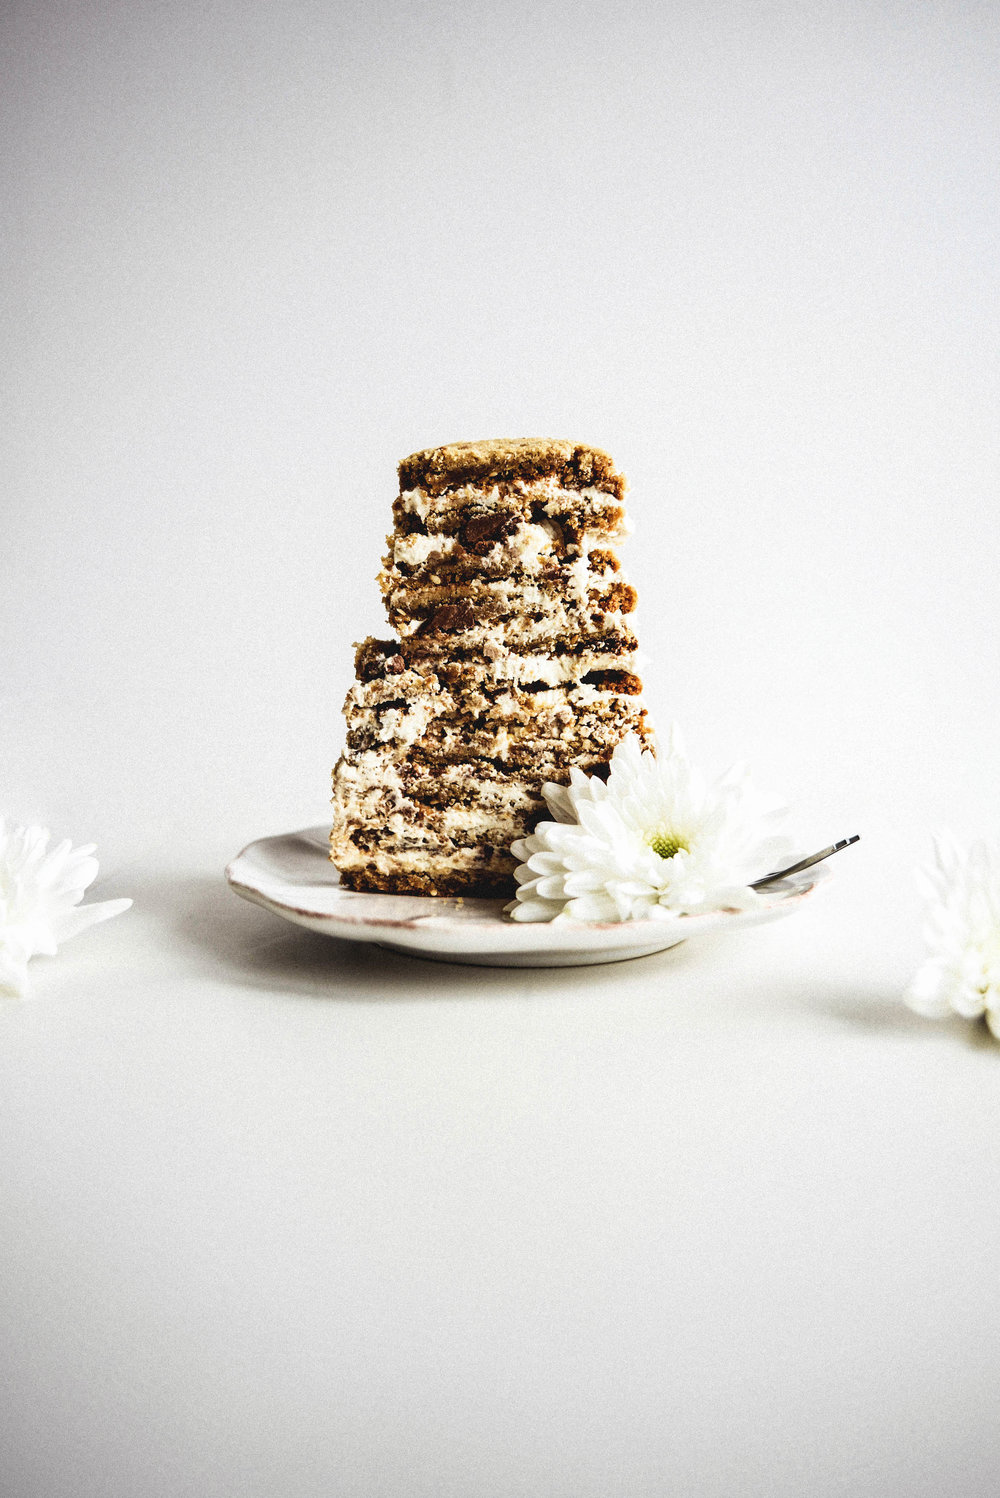 Toasted-Sesame-and-Chocolate-Cookie-Cake-with-Tahini-Halva-Buttercream-8.jpg